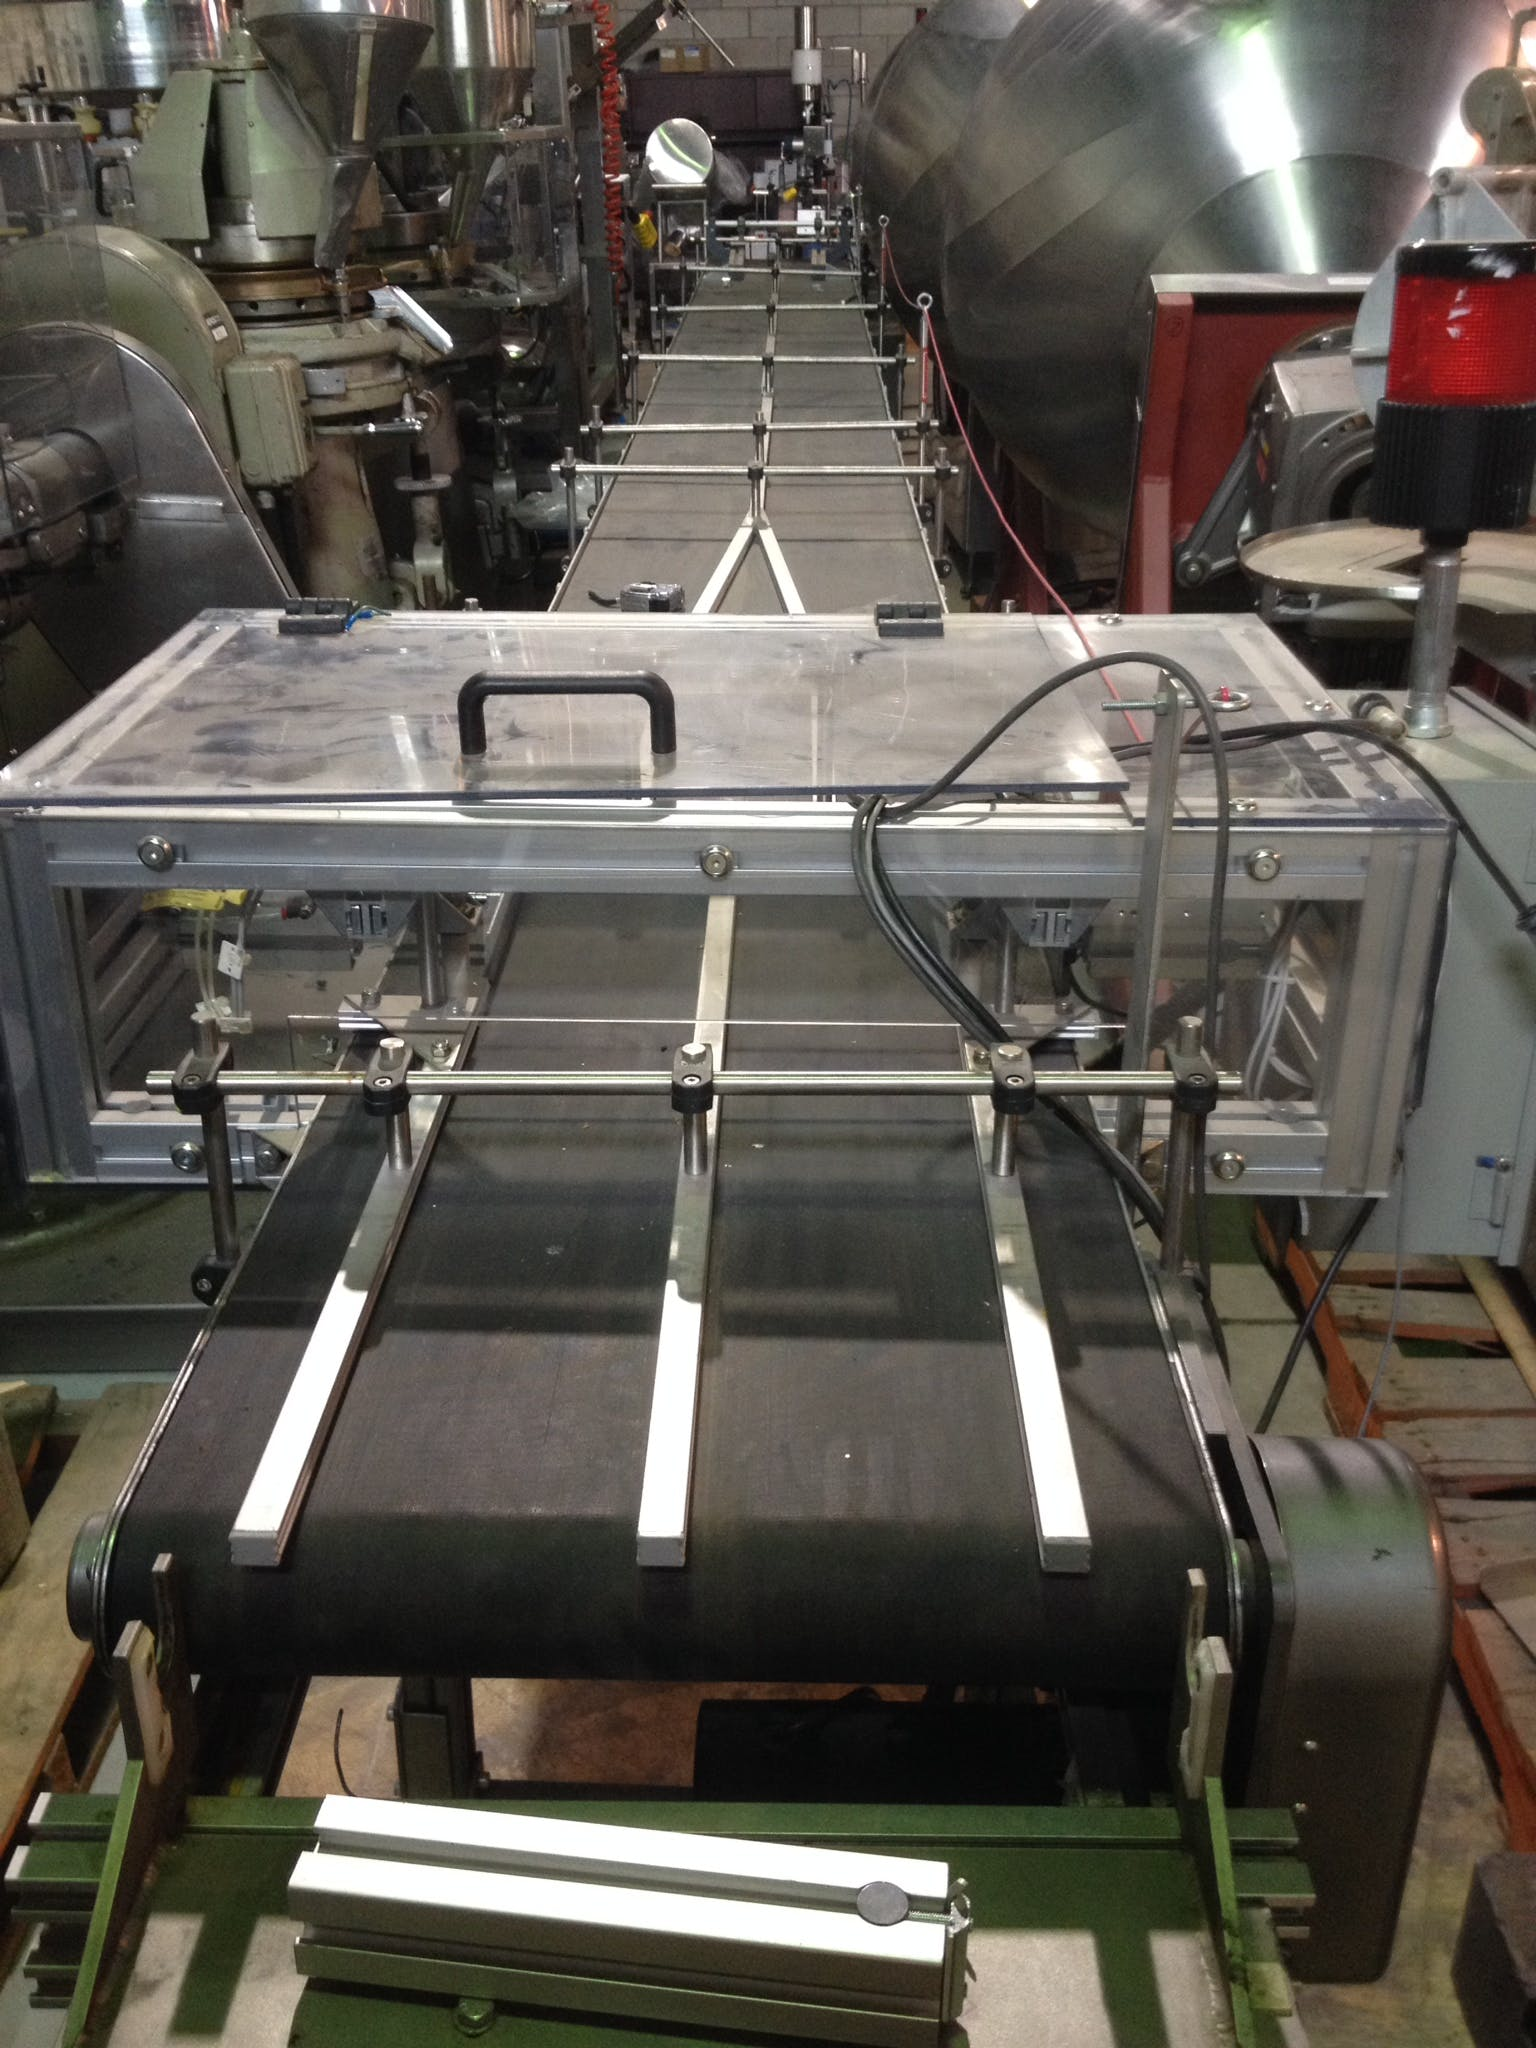 ELECTROTECH Rubber Belt Conveyor - 21 feet  Conveyor sold by Aevos Equipment